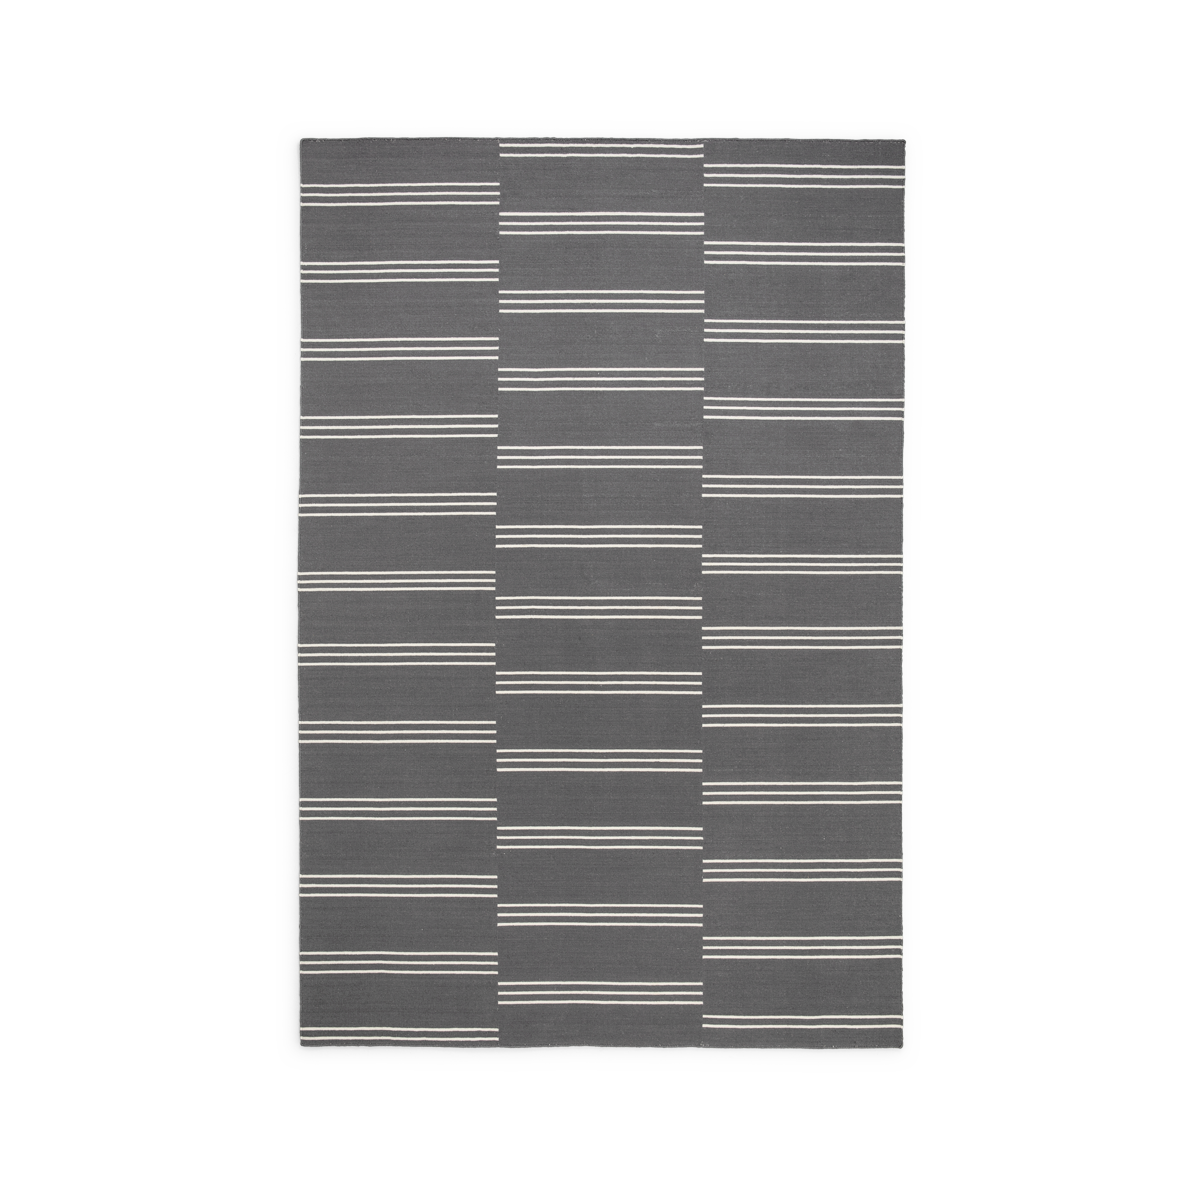 Product image of the flatweave rug Stripes in the colors Gray and Cream. The rug has a pattern made from stripes in three rows in a cream color.